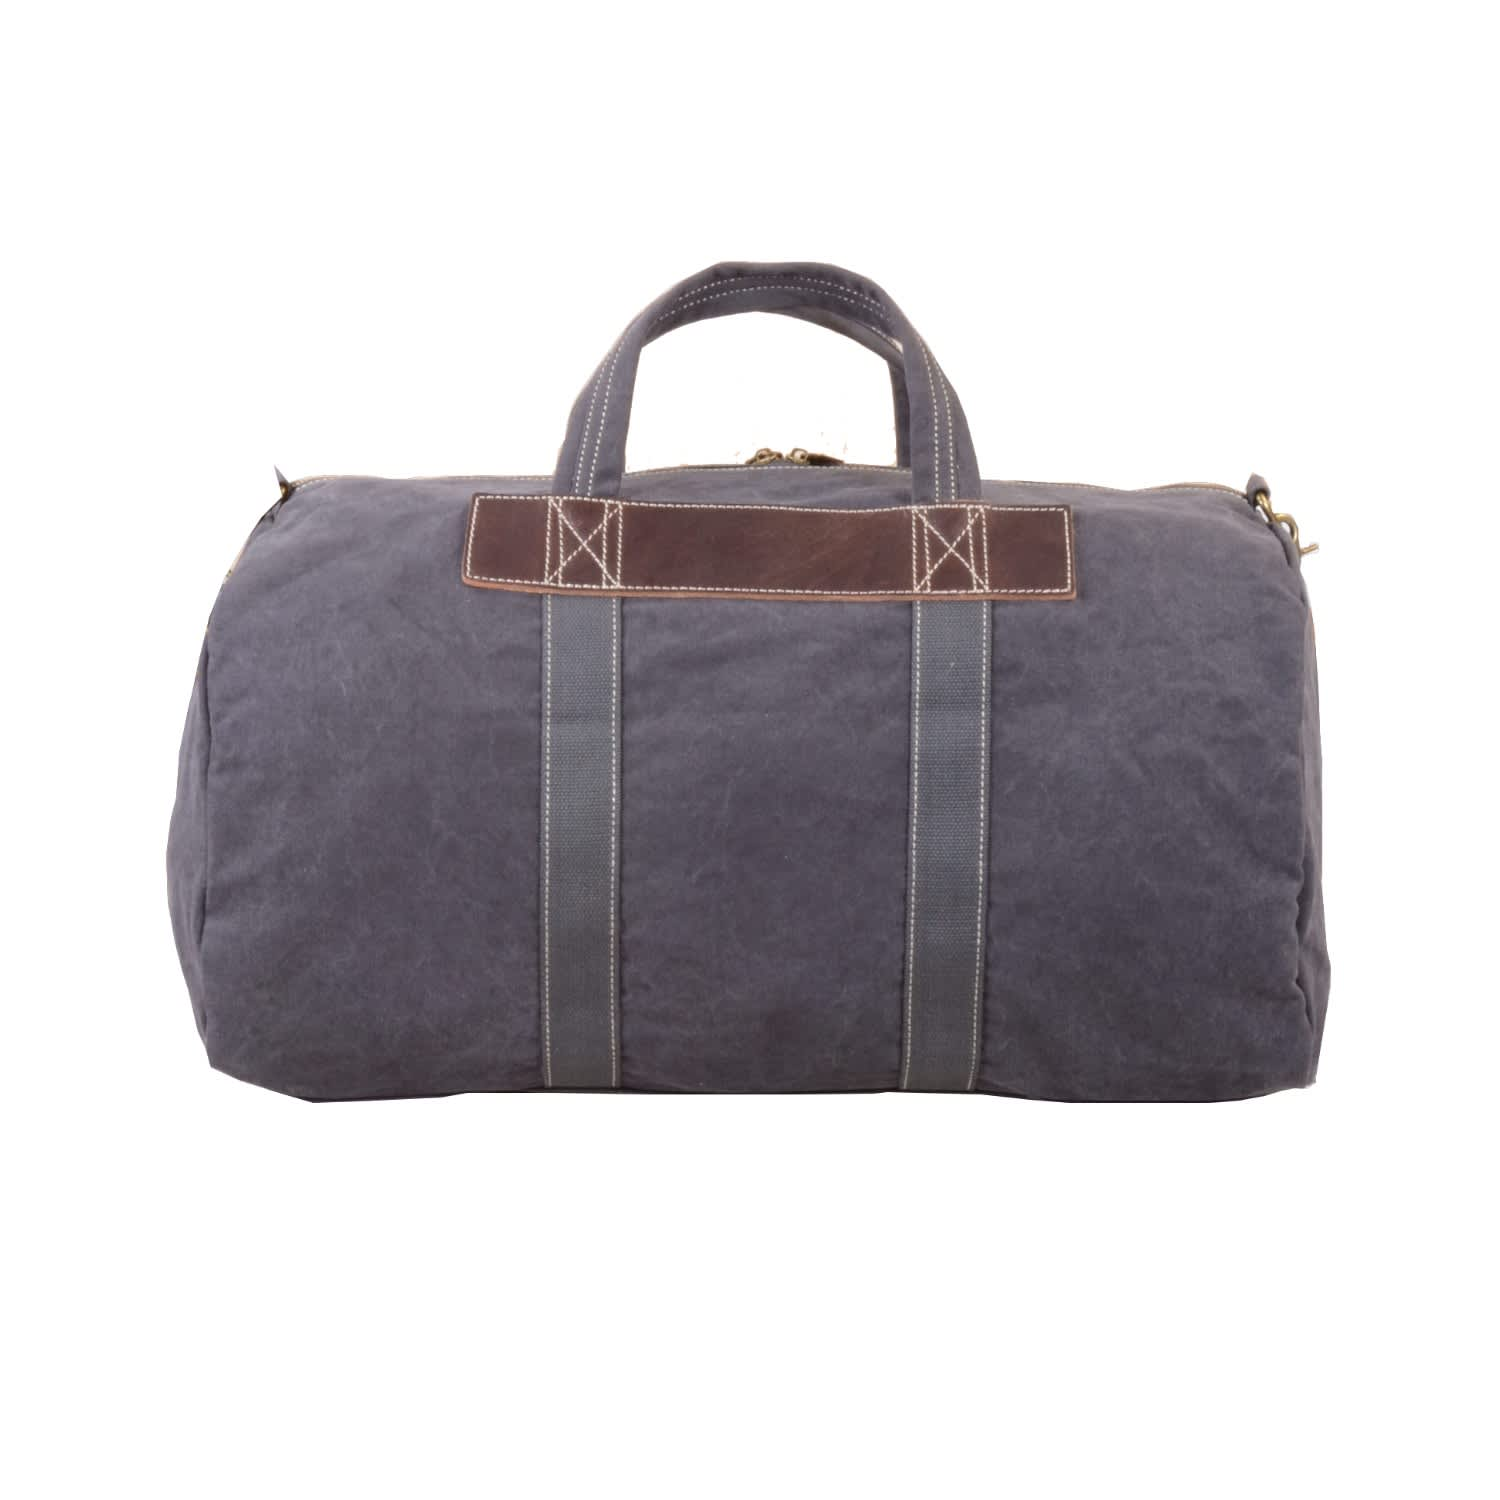 85d233be19 Canvas   Leather Duffle Bag In Grey image